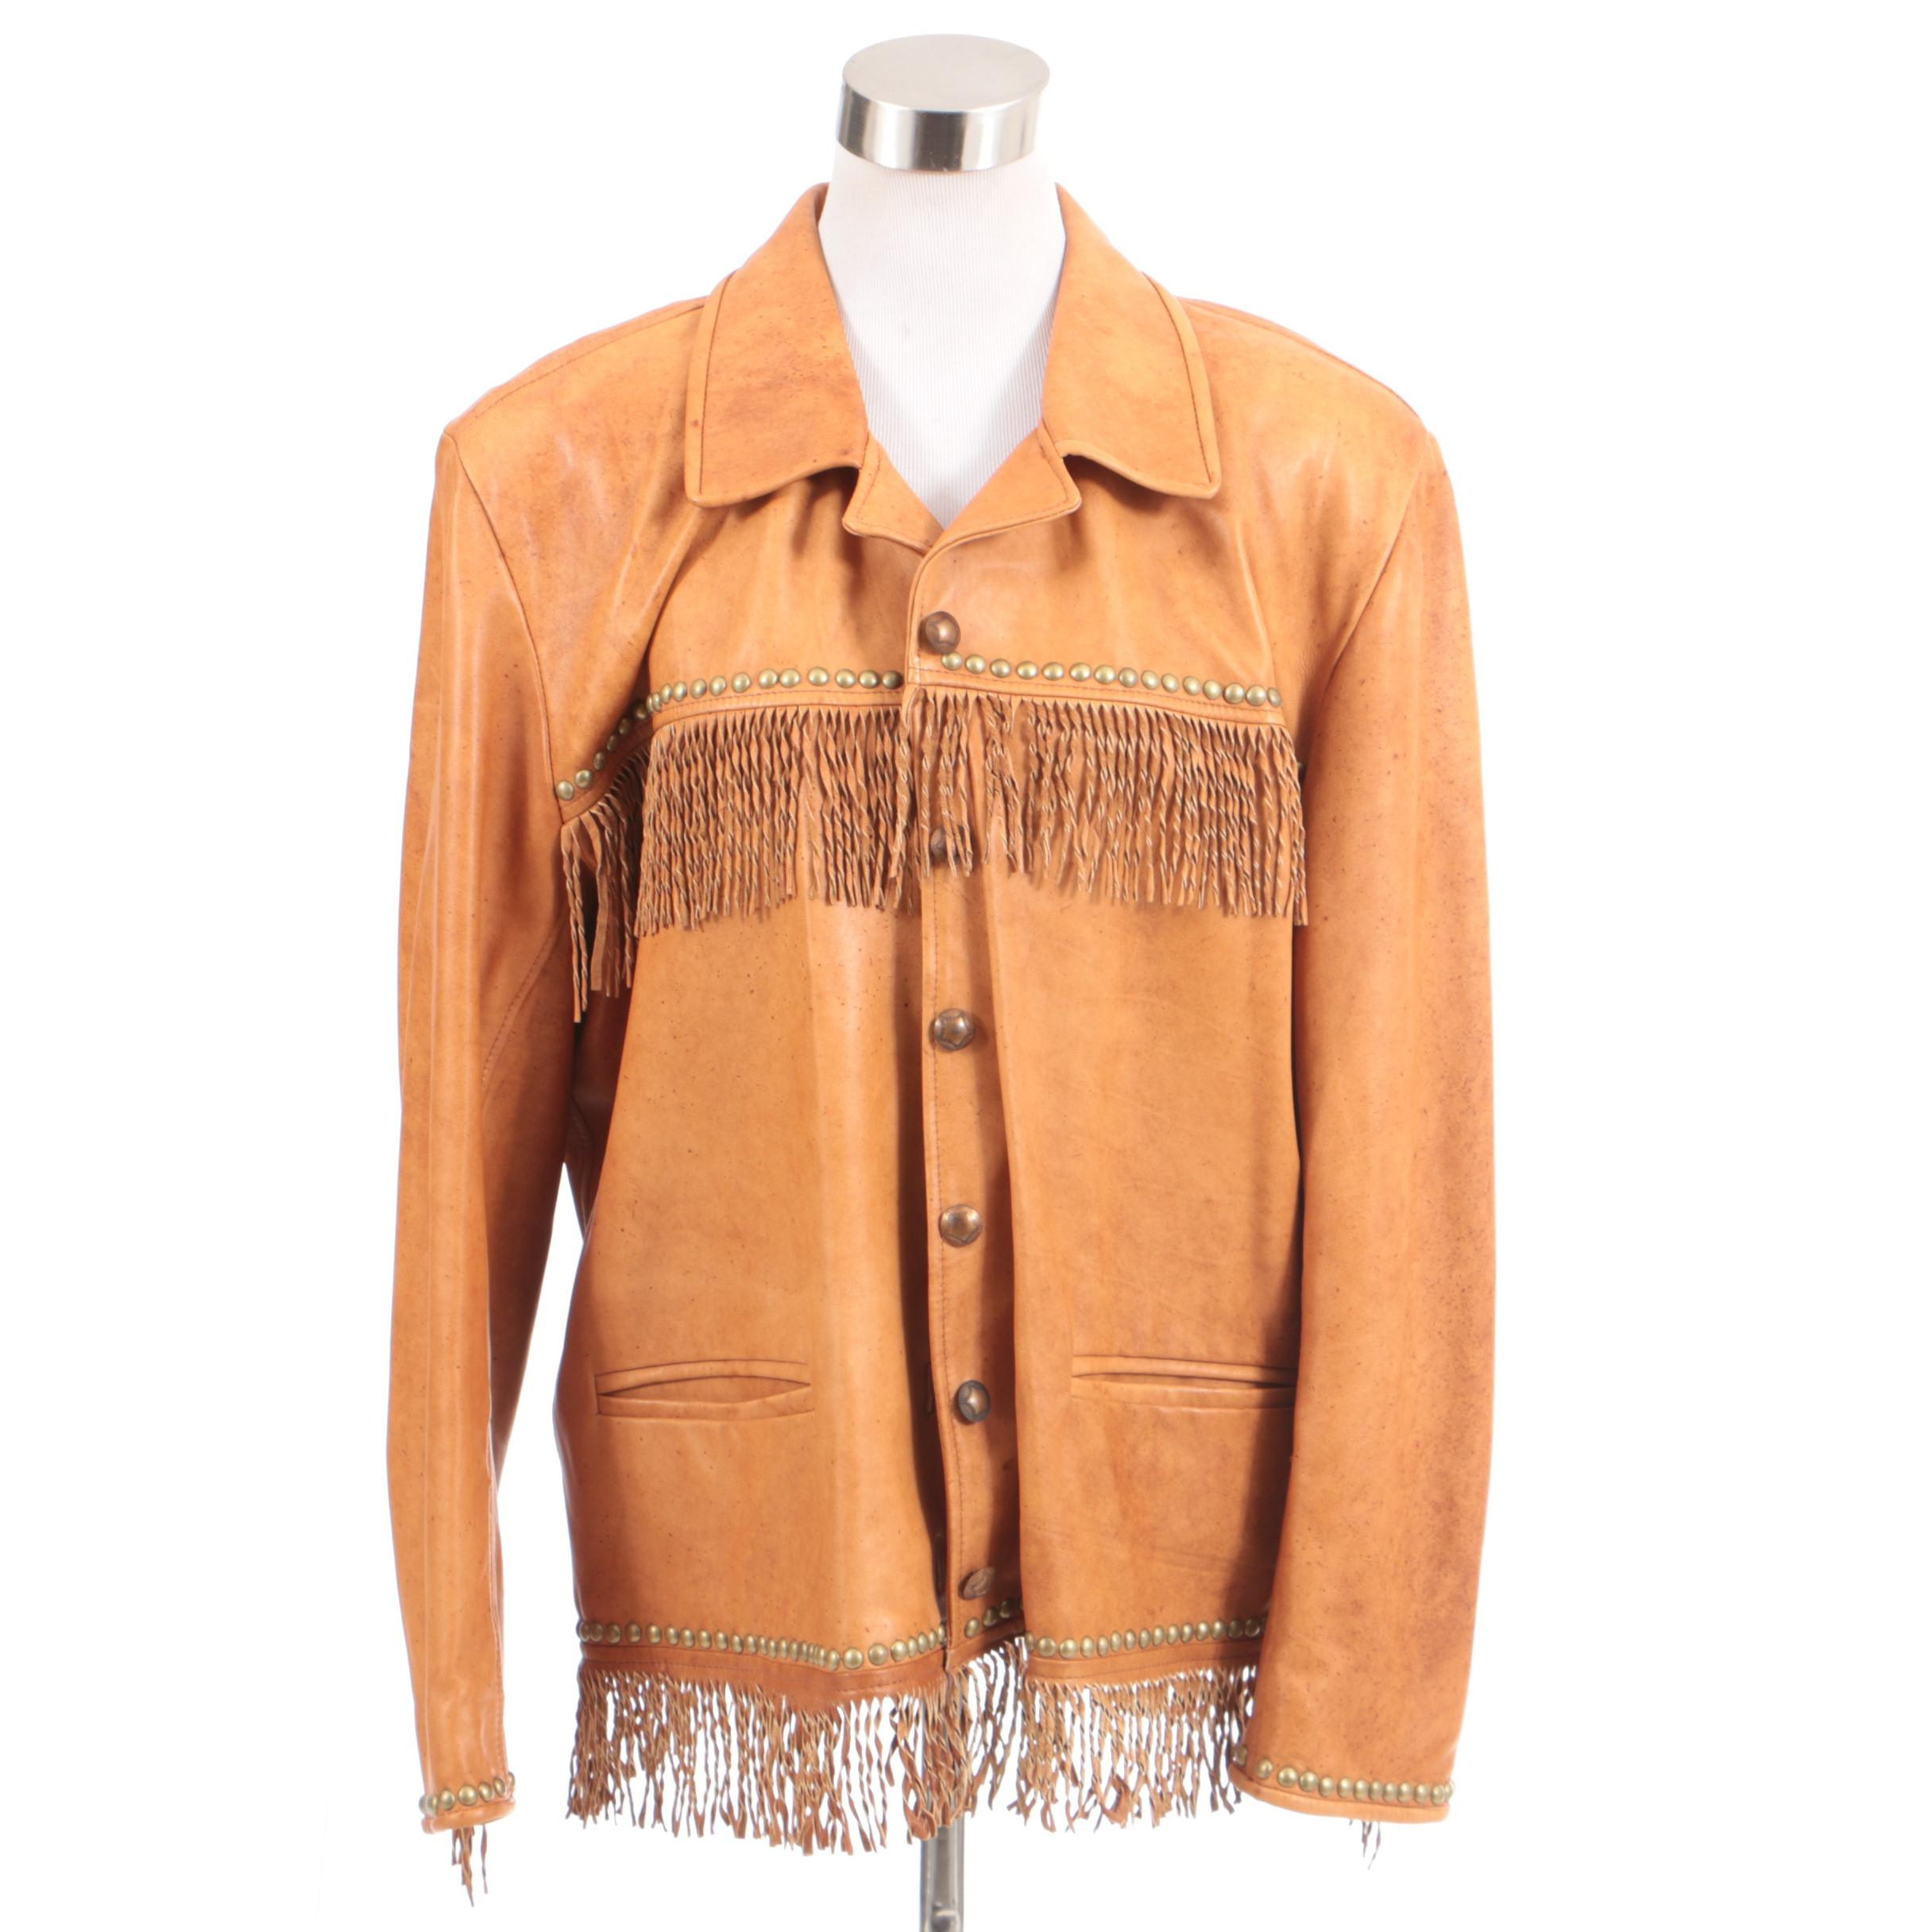 Women's Double D Ranch of Yoakum, Texas Tan Leather Jacket with Fringe